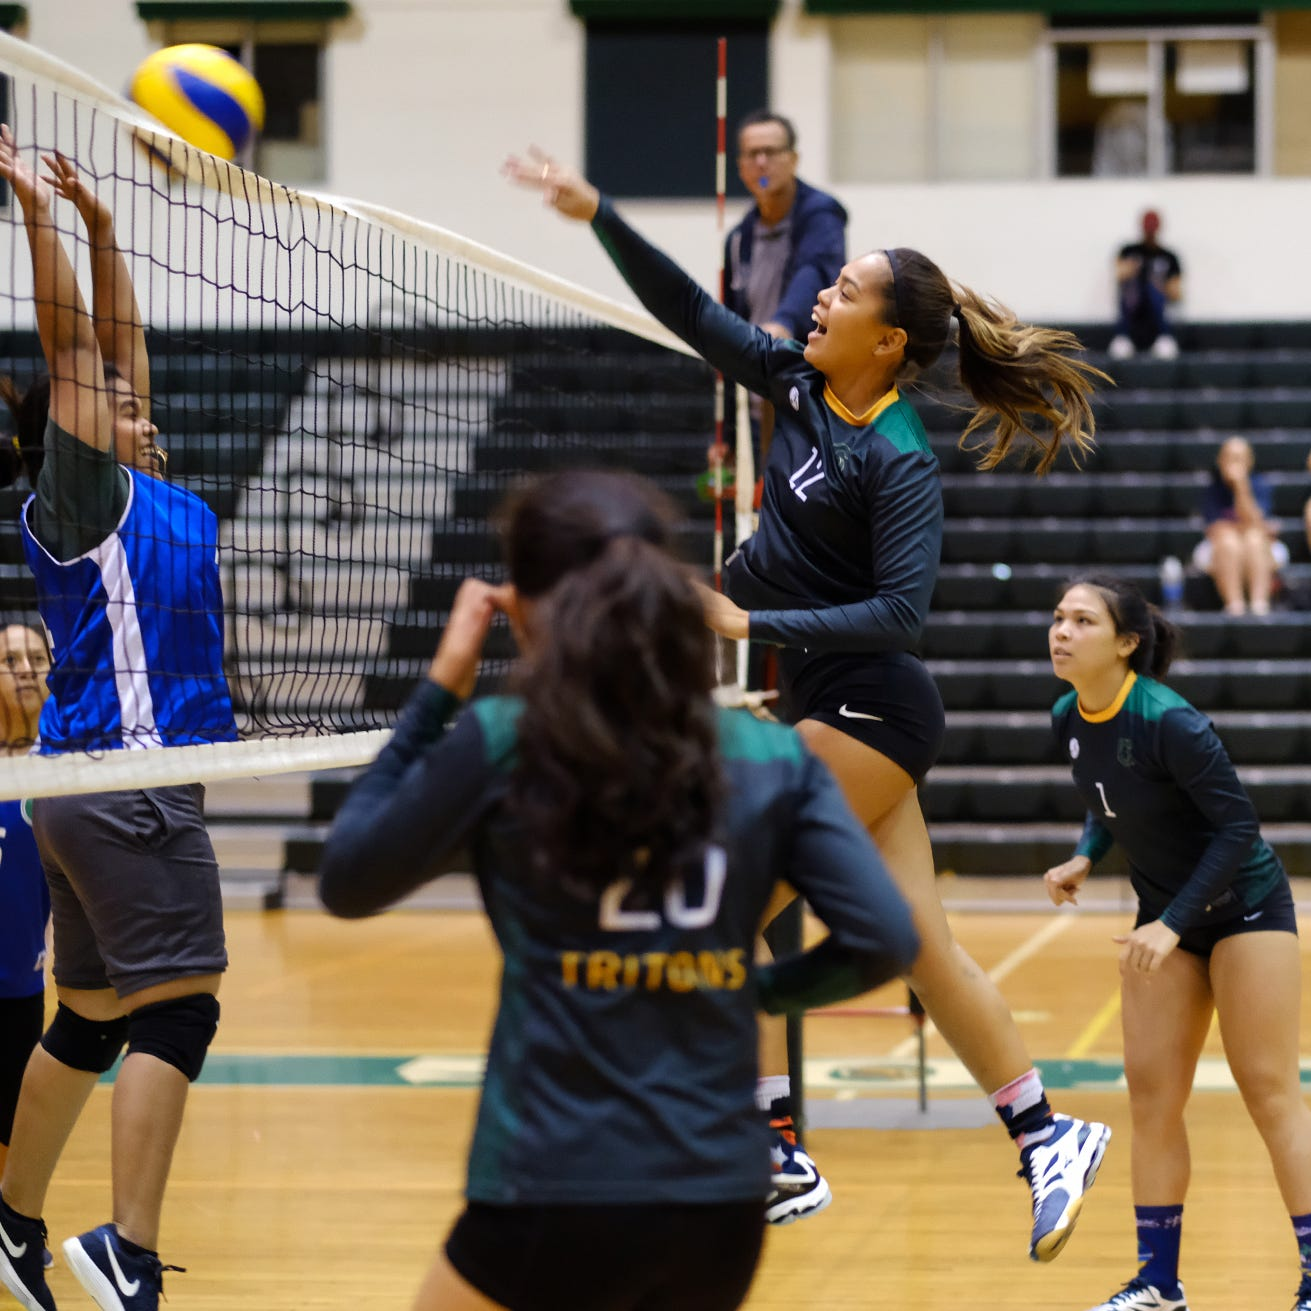 Sports Shorts: Tritons earn win over Tridents